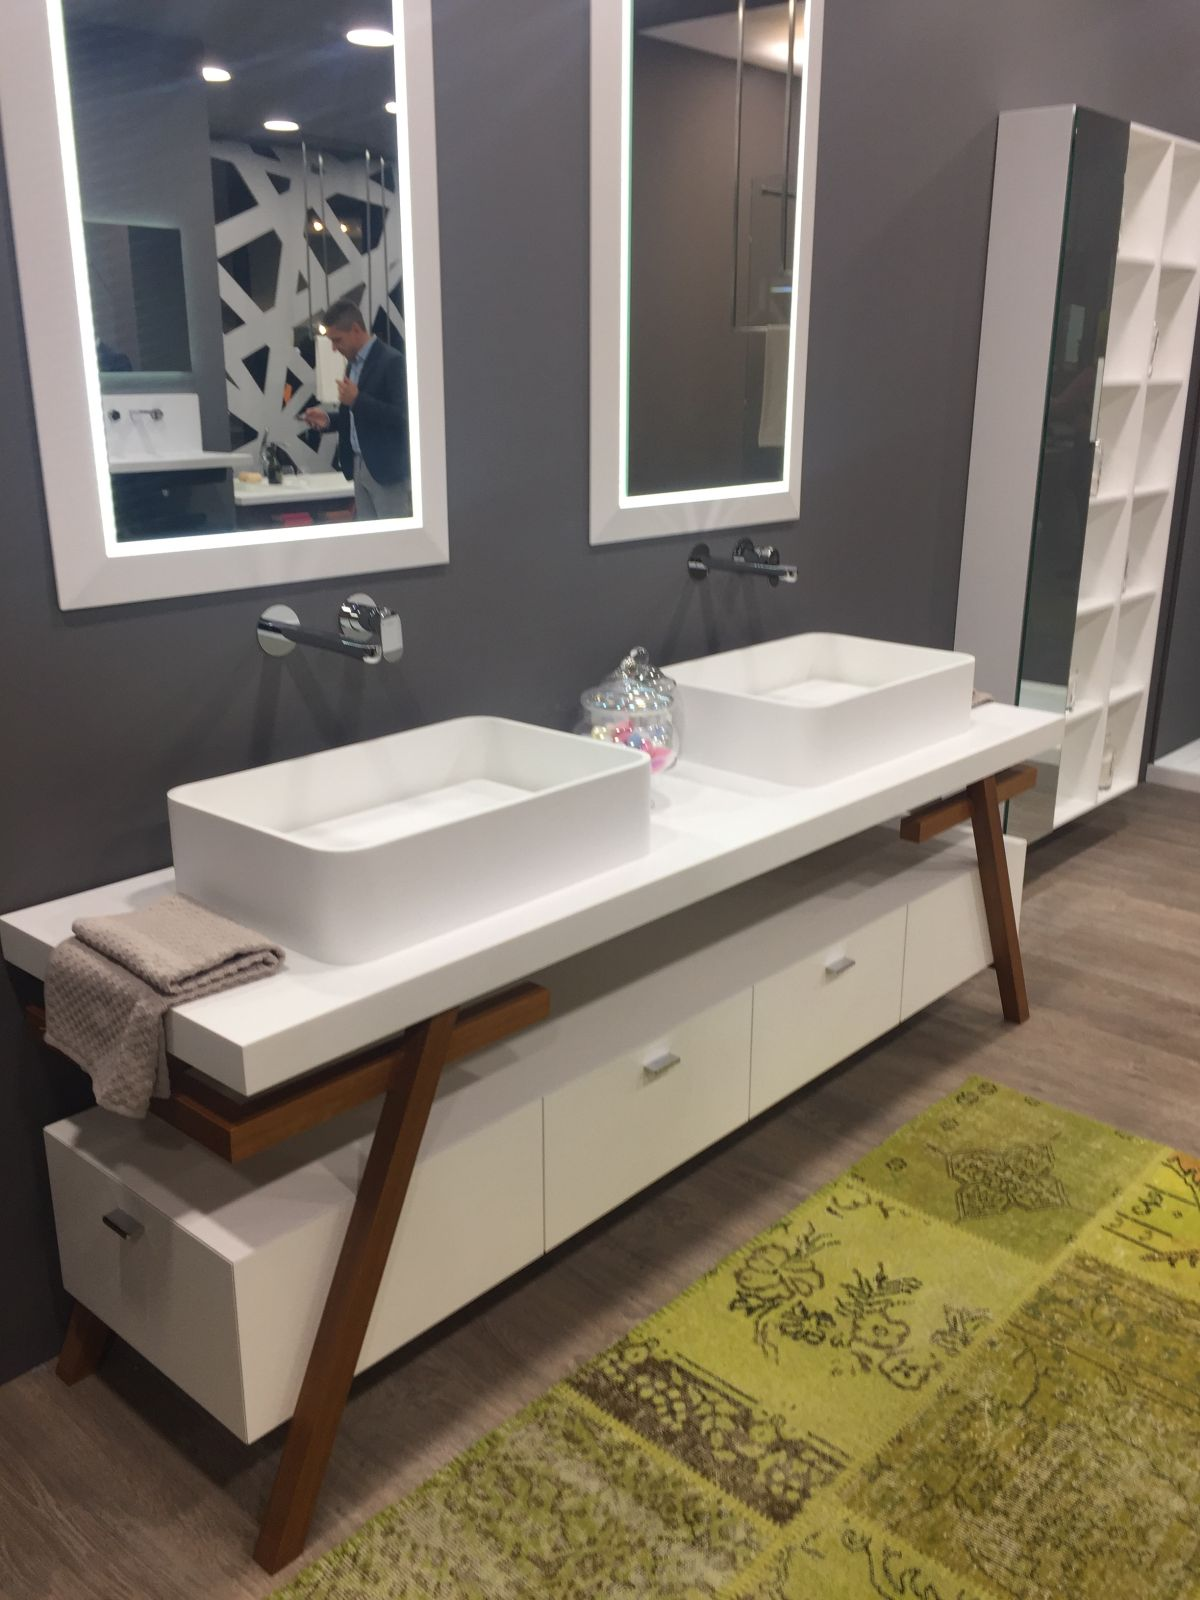 Wood legs and countertop sink